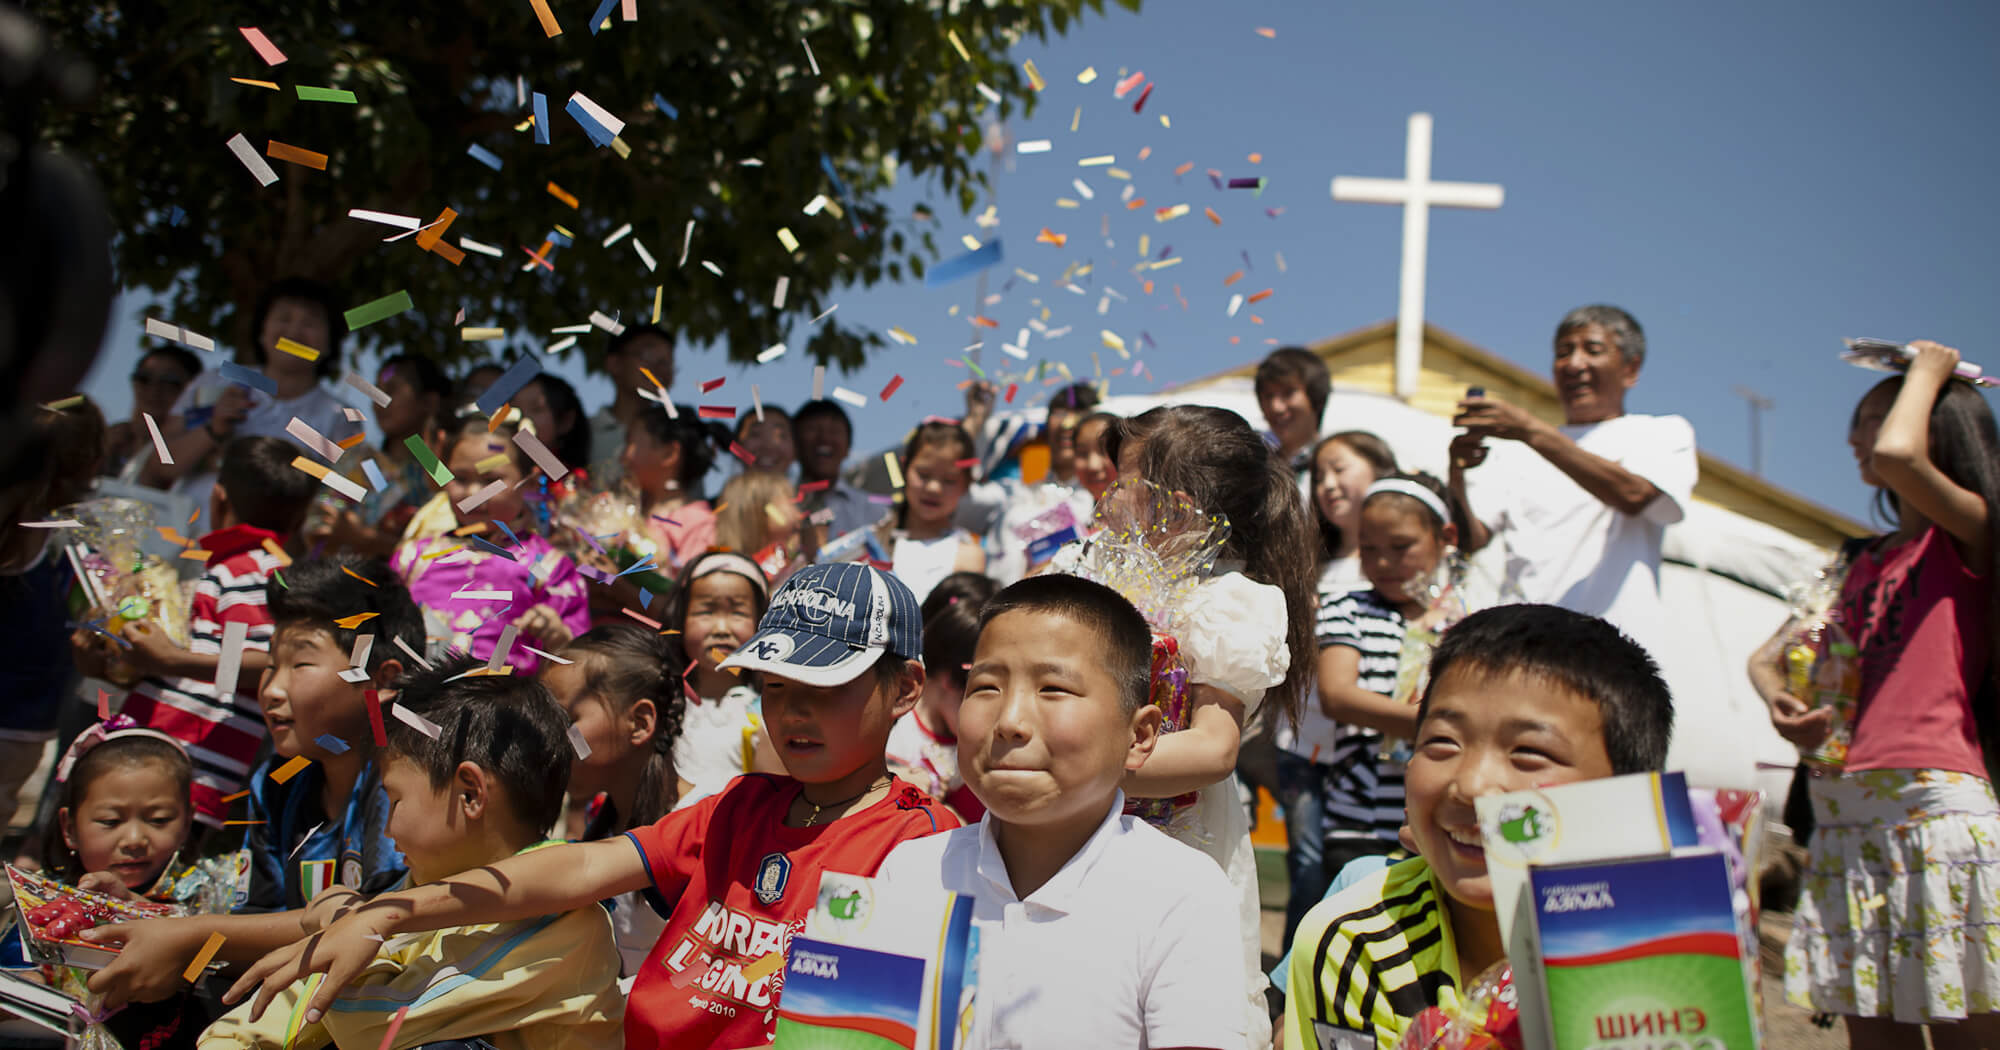 Children celebrating with Bibles